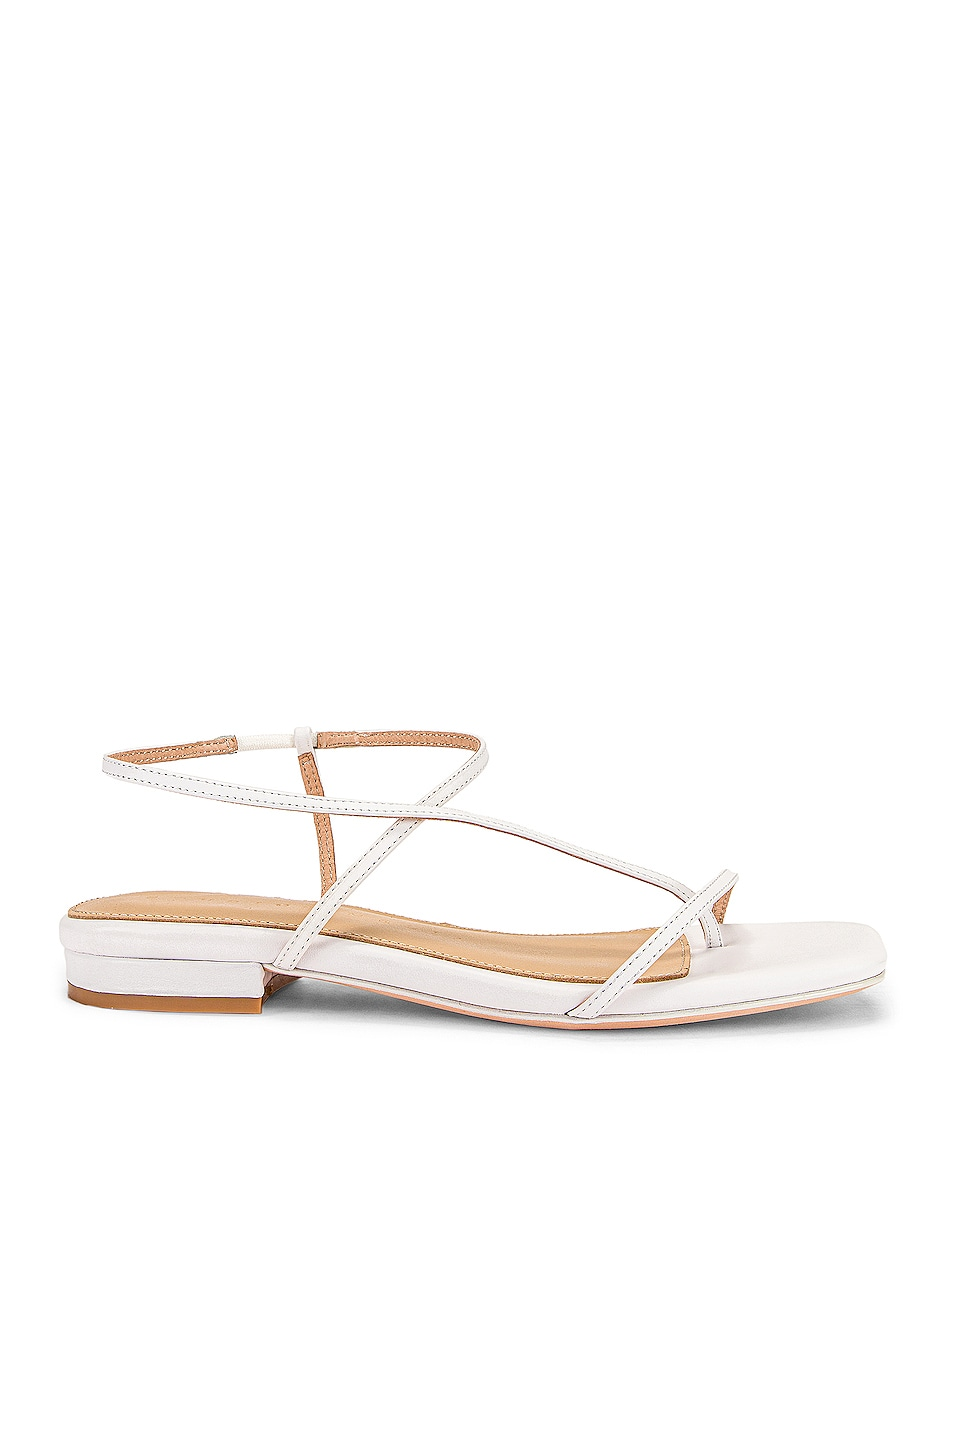 Image 1 of Studio Amelia 1.2 Sandal in White